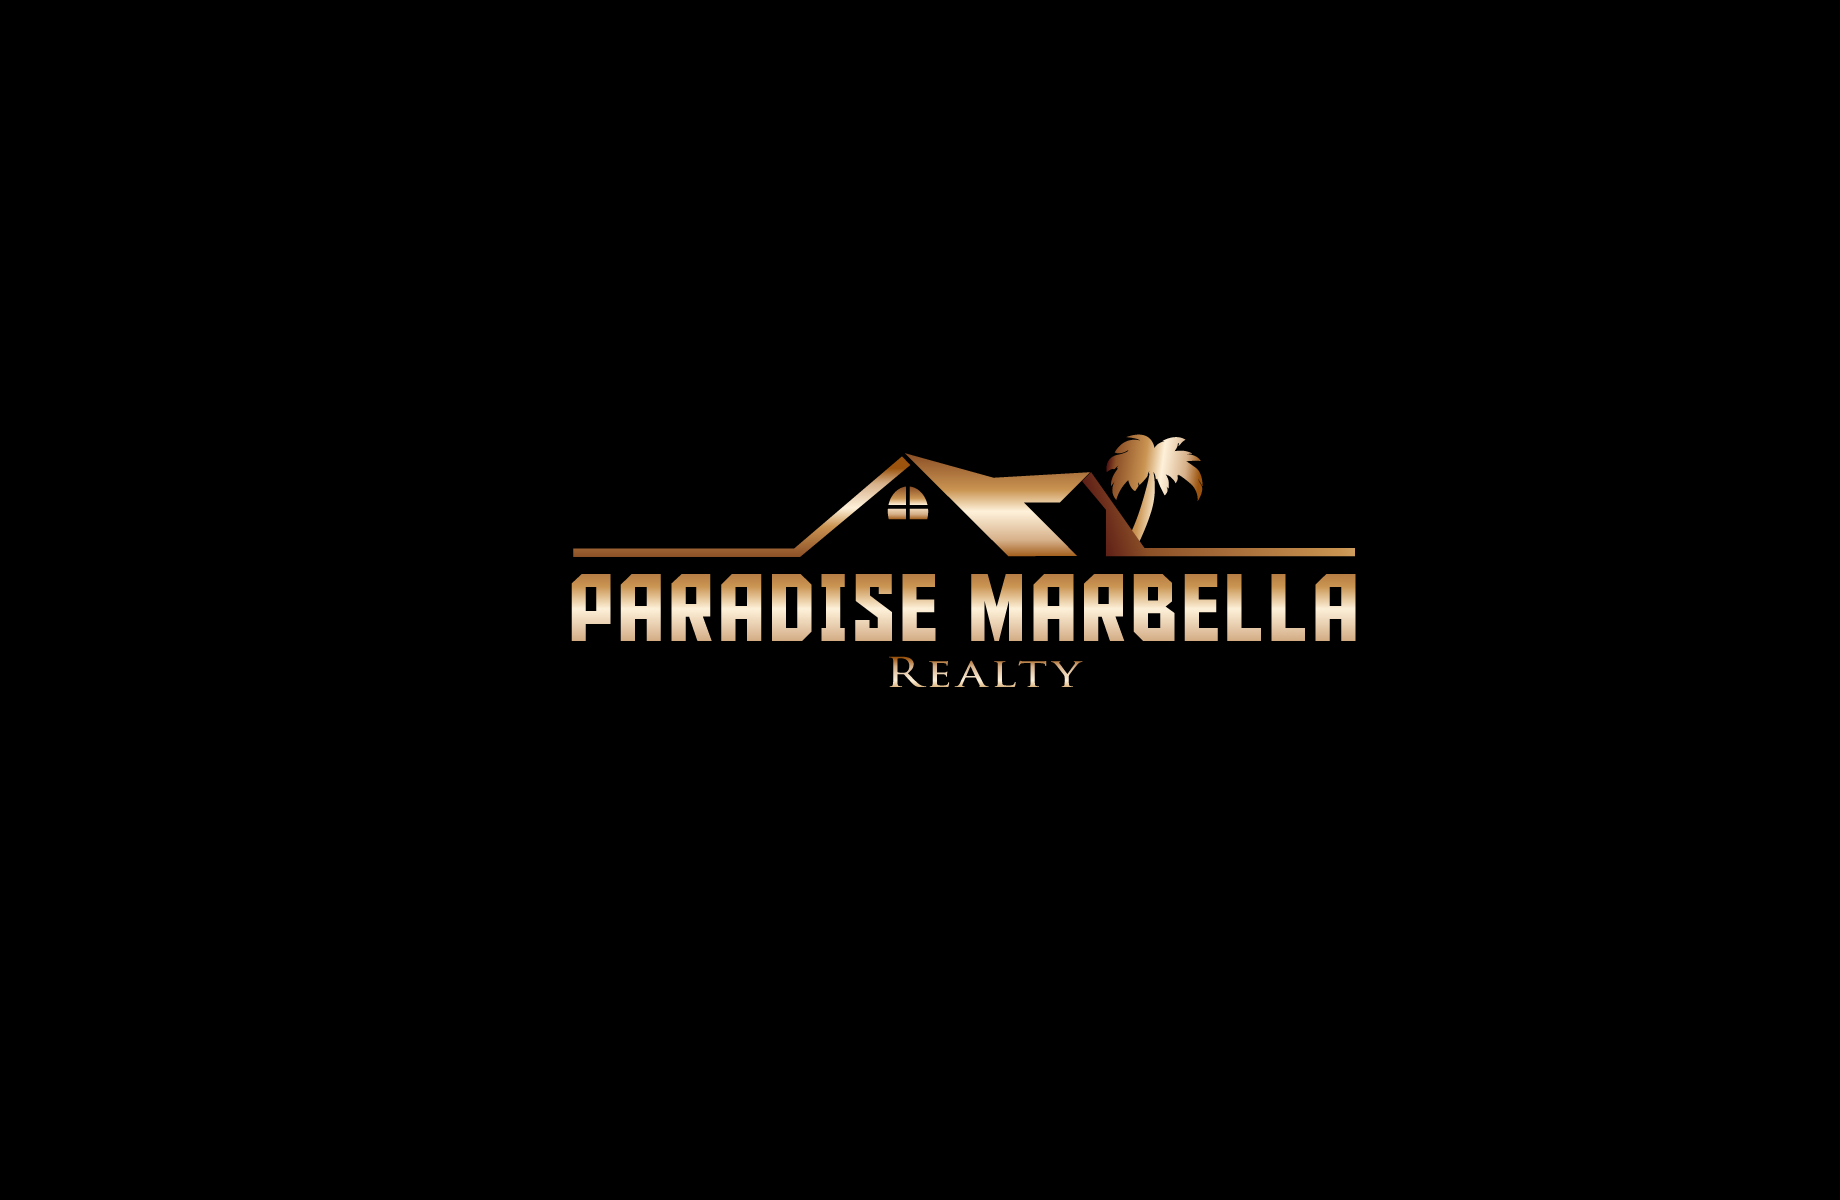 Logo Design by Jan Chua - Entry No. 89 in the Logo Design Contest Captivating Logo Design for Paradise Marbella Realty.